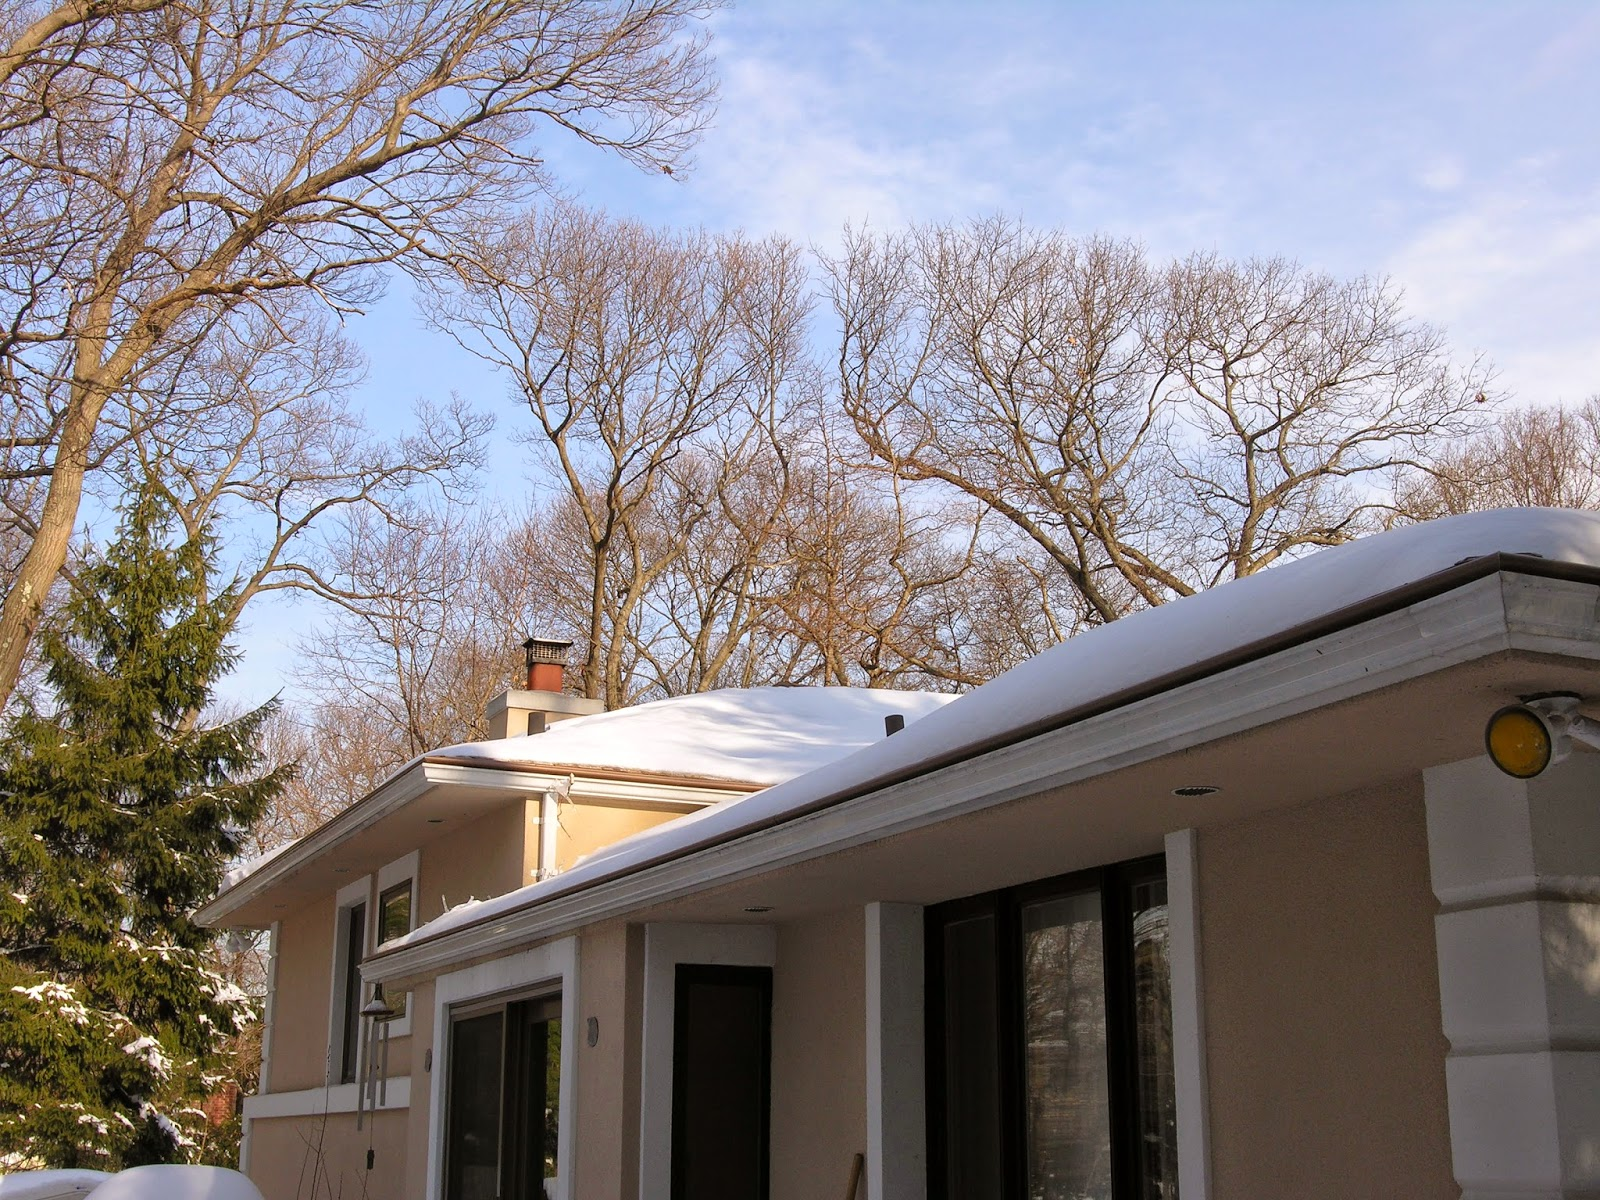 One Of The Biggest Stumbling Blocks To A Heated System Is The Inability To  Heat A Large Area And To Keep Up With The Accumulating Ice And Snow Melt.